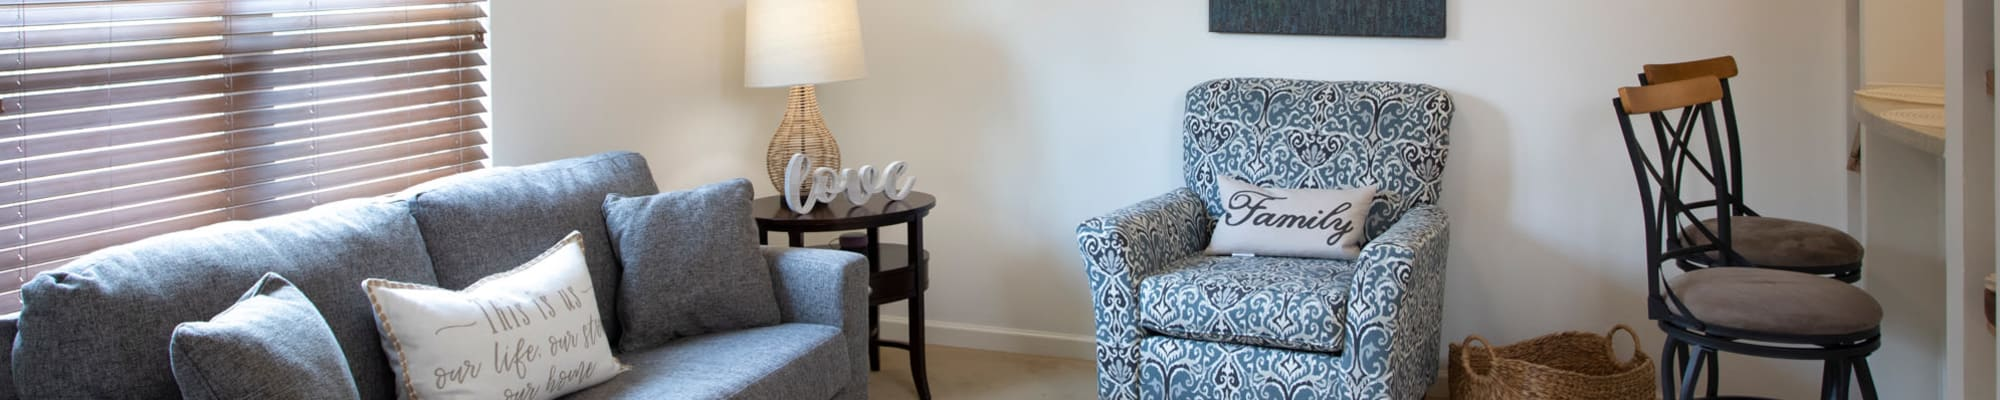 Floor Plans at The Harmony Collection at Columbia in Columbia, South Carolina